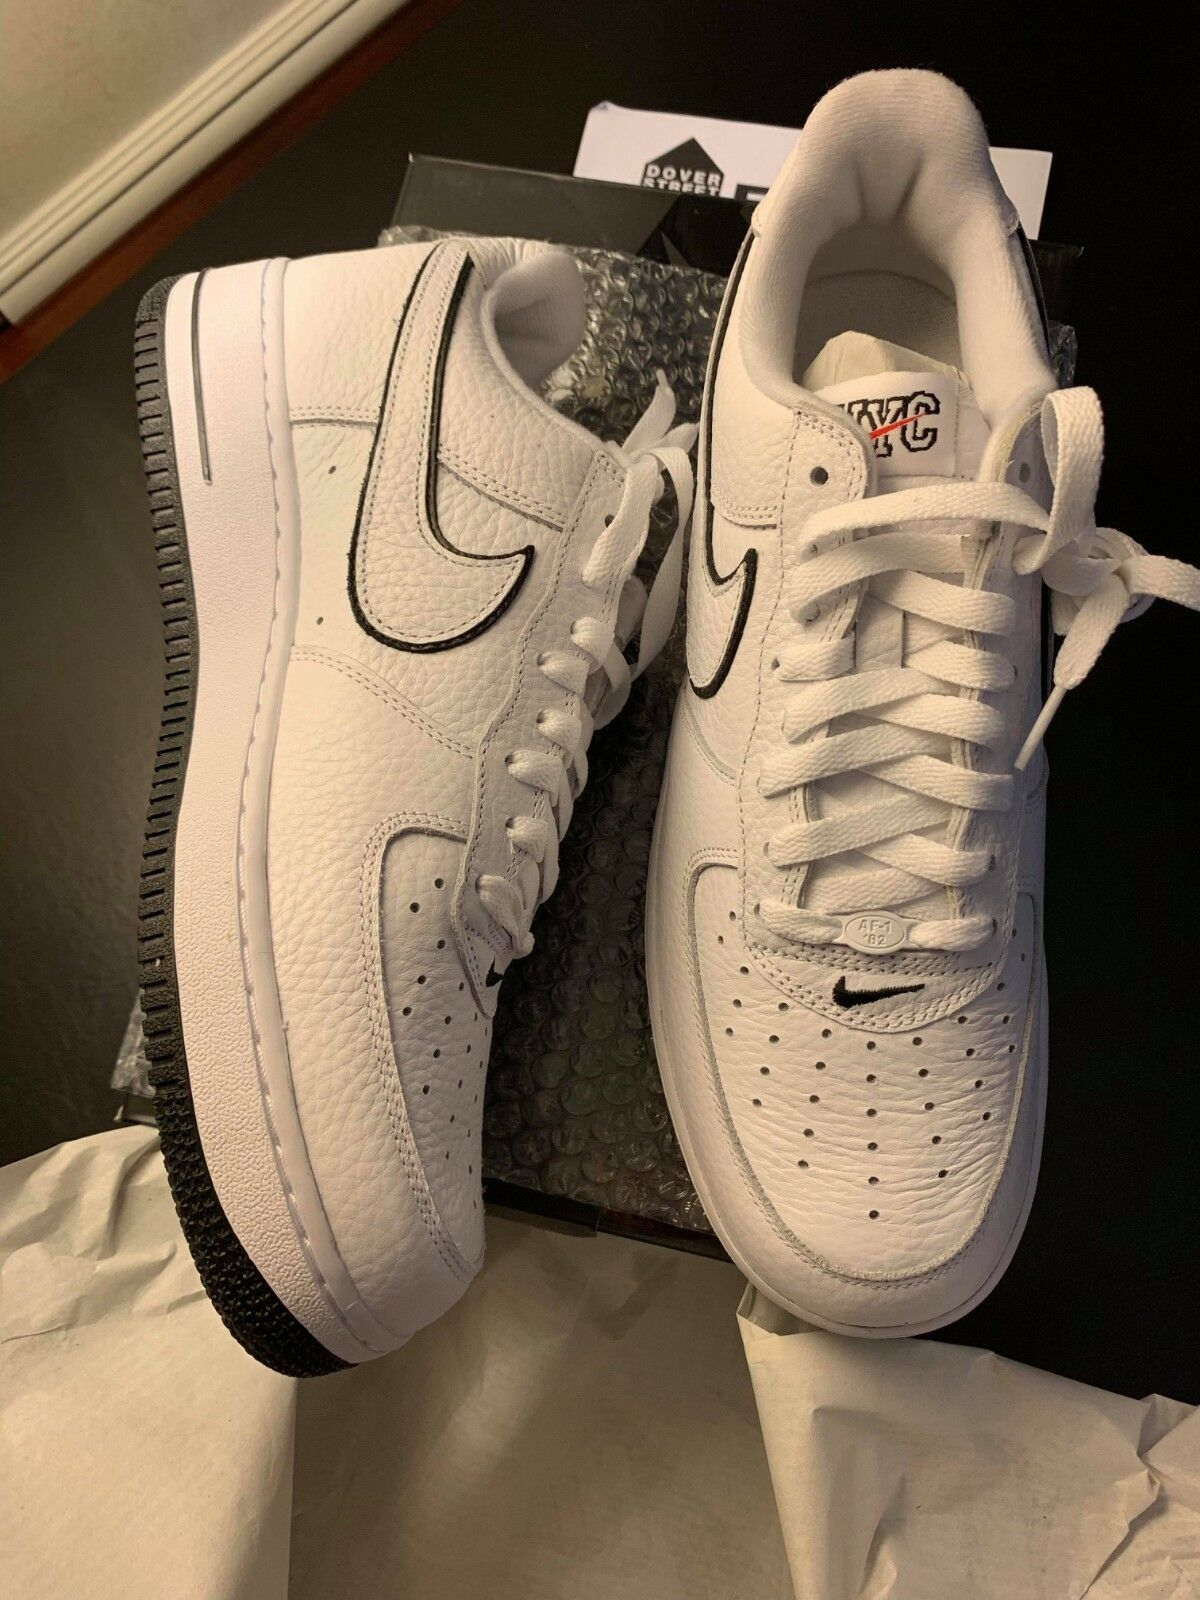 NEW Nike Air Force 1 Low Retro DSM White 10.5 READY TO SHIP shoes Dover street